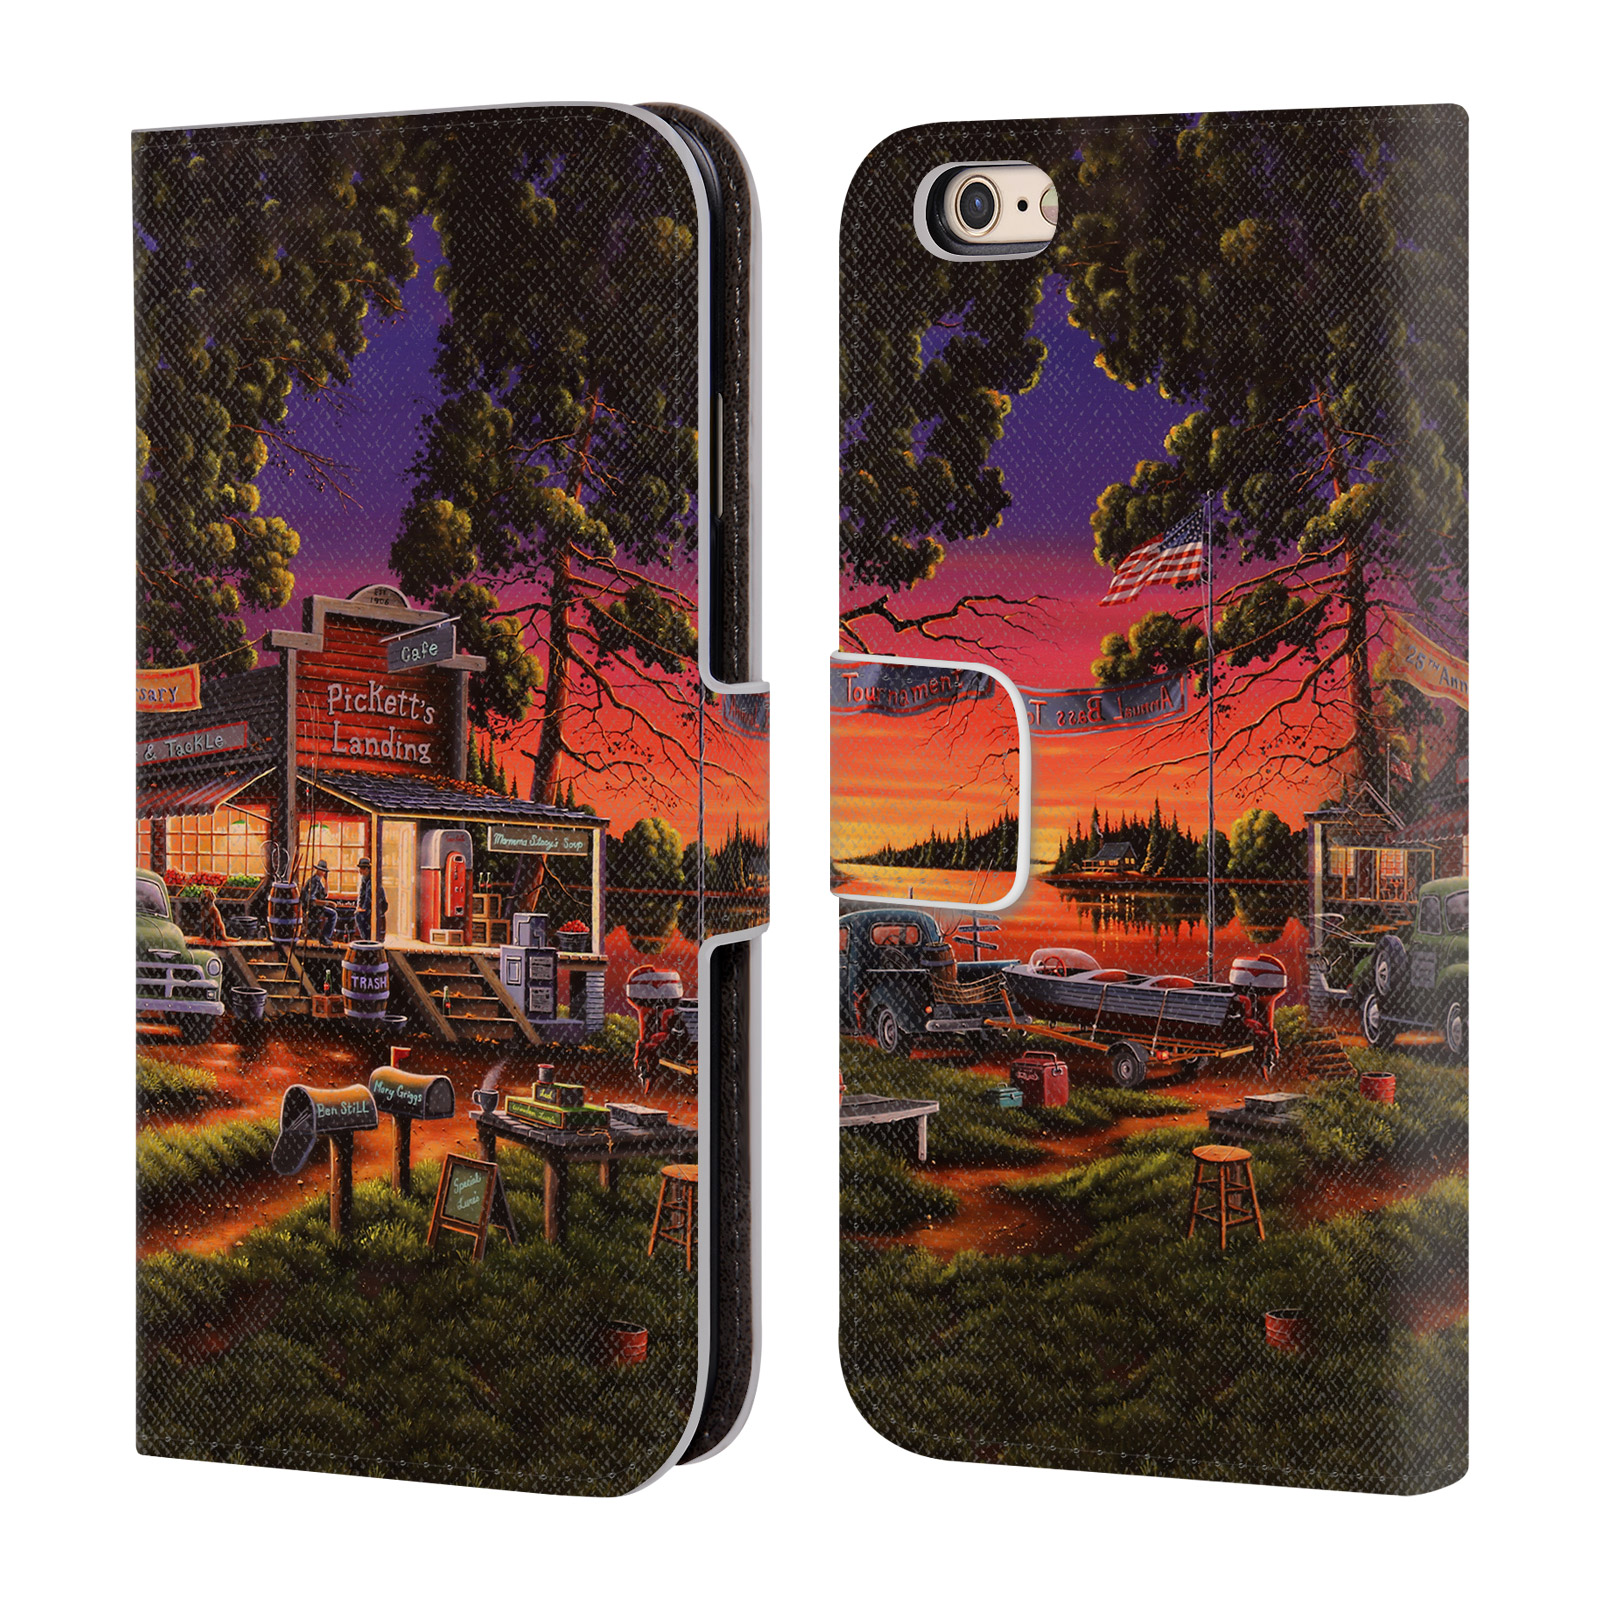 OFFICIAL-GENO-PEOPLES-ART-HALLOWEEN-LEATHER-BOOK-CASE-FOR-APPLE-iPHONE-PHONES